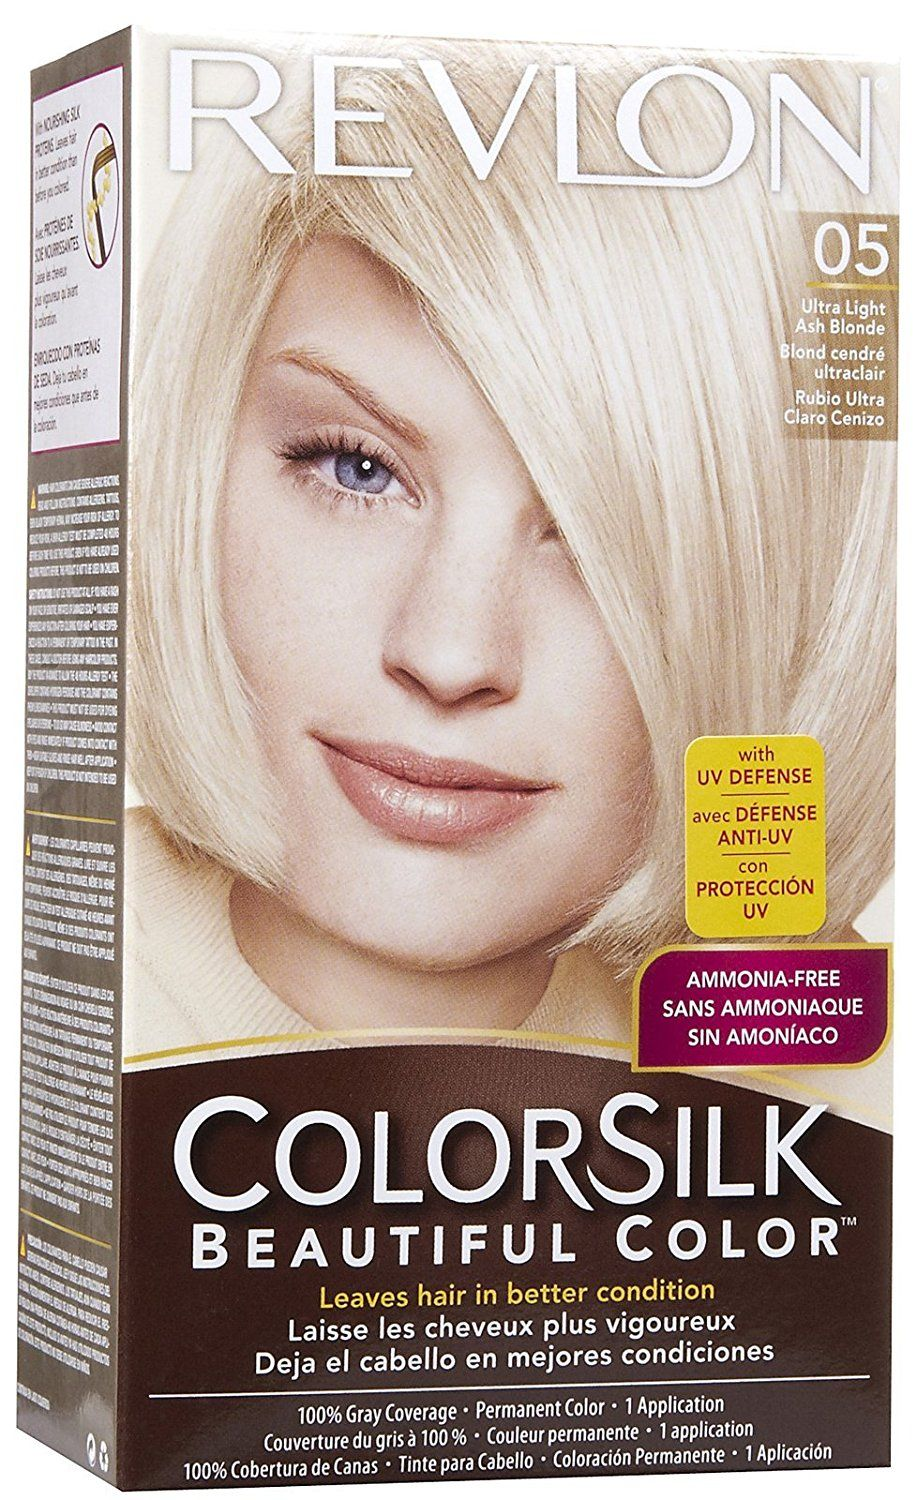 Revlon Colorsilk Beautiful Color 05 Ultra Light Ash Blonde 1 Ea